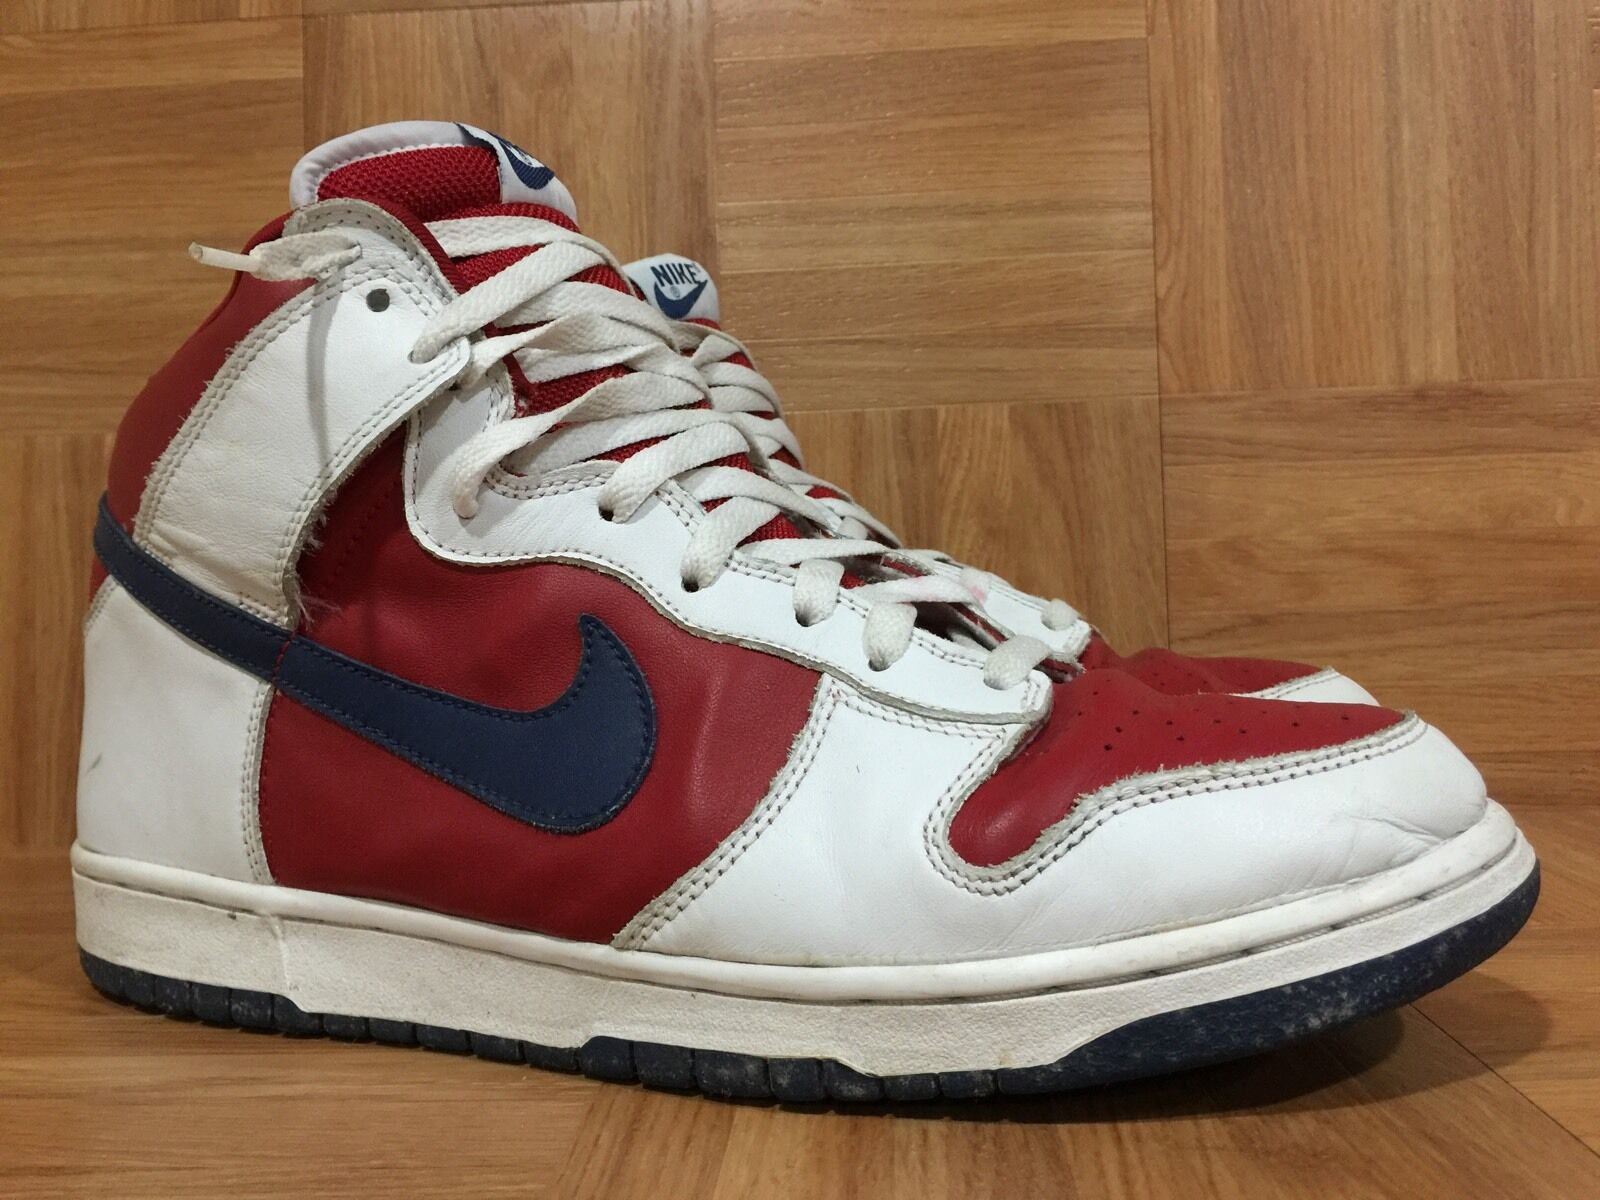 Vintage Nike Dunk High Los Angeles Clippers Rapid bluee White Red 12 305287-141